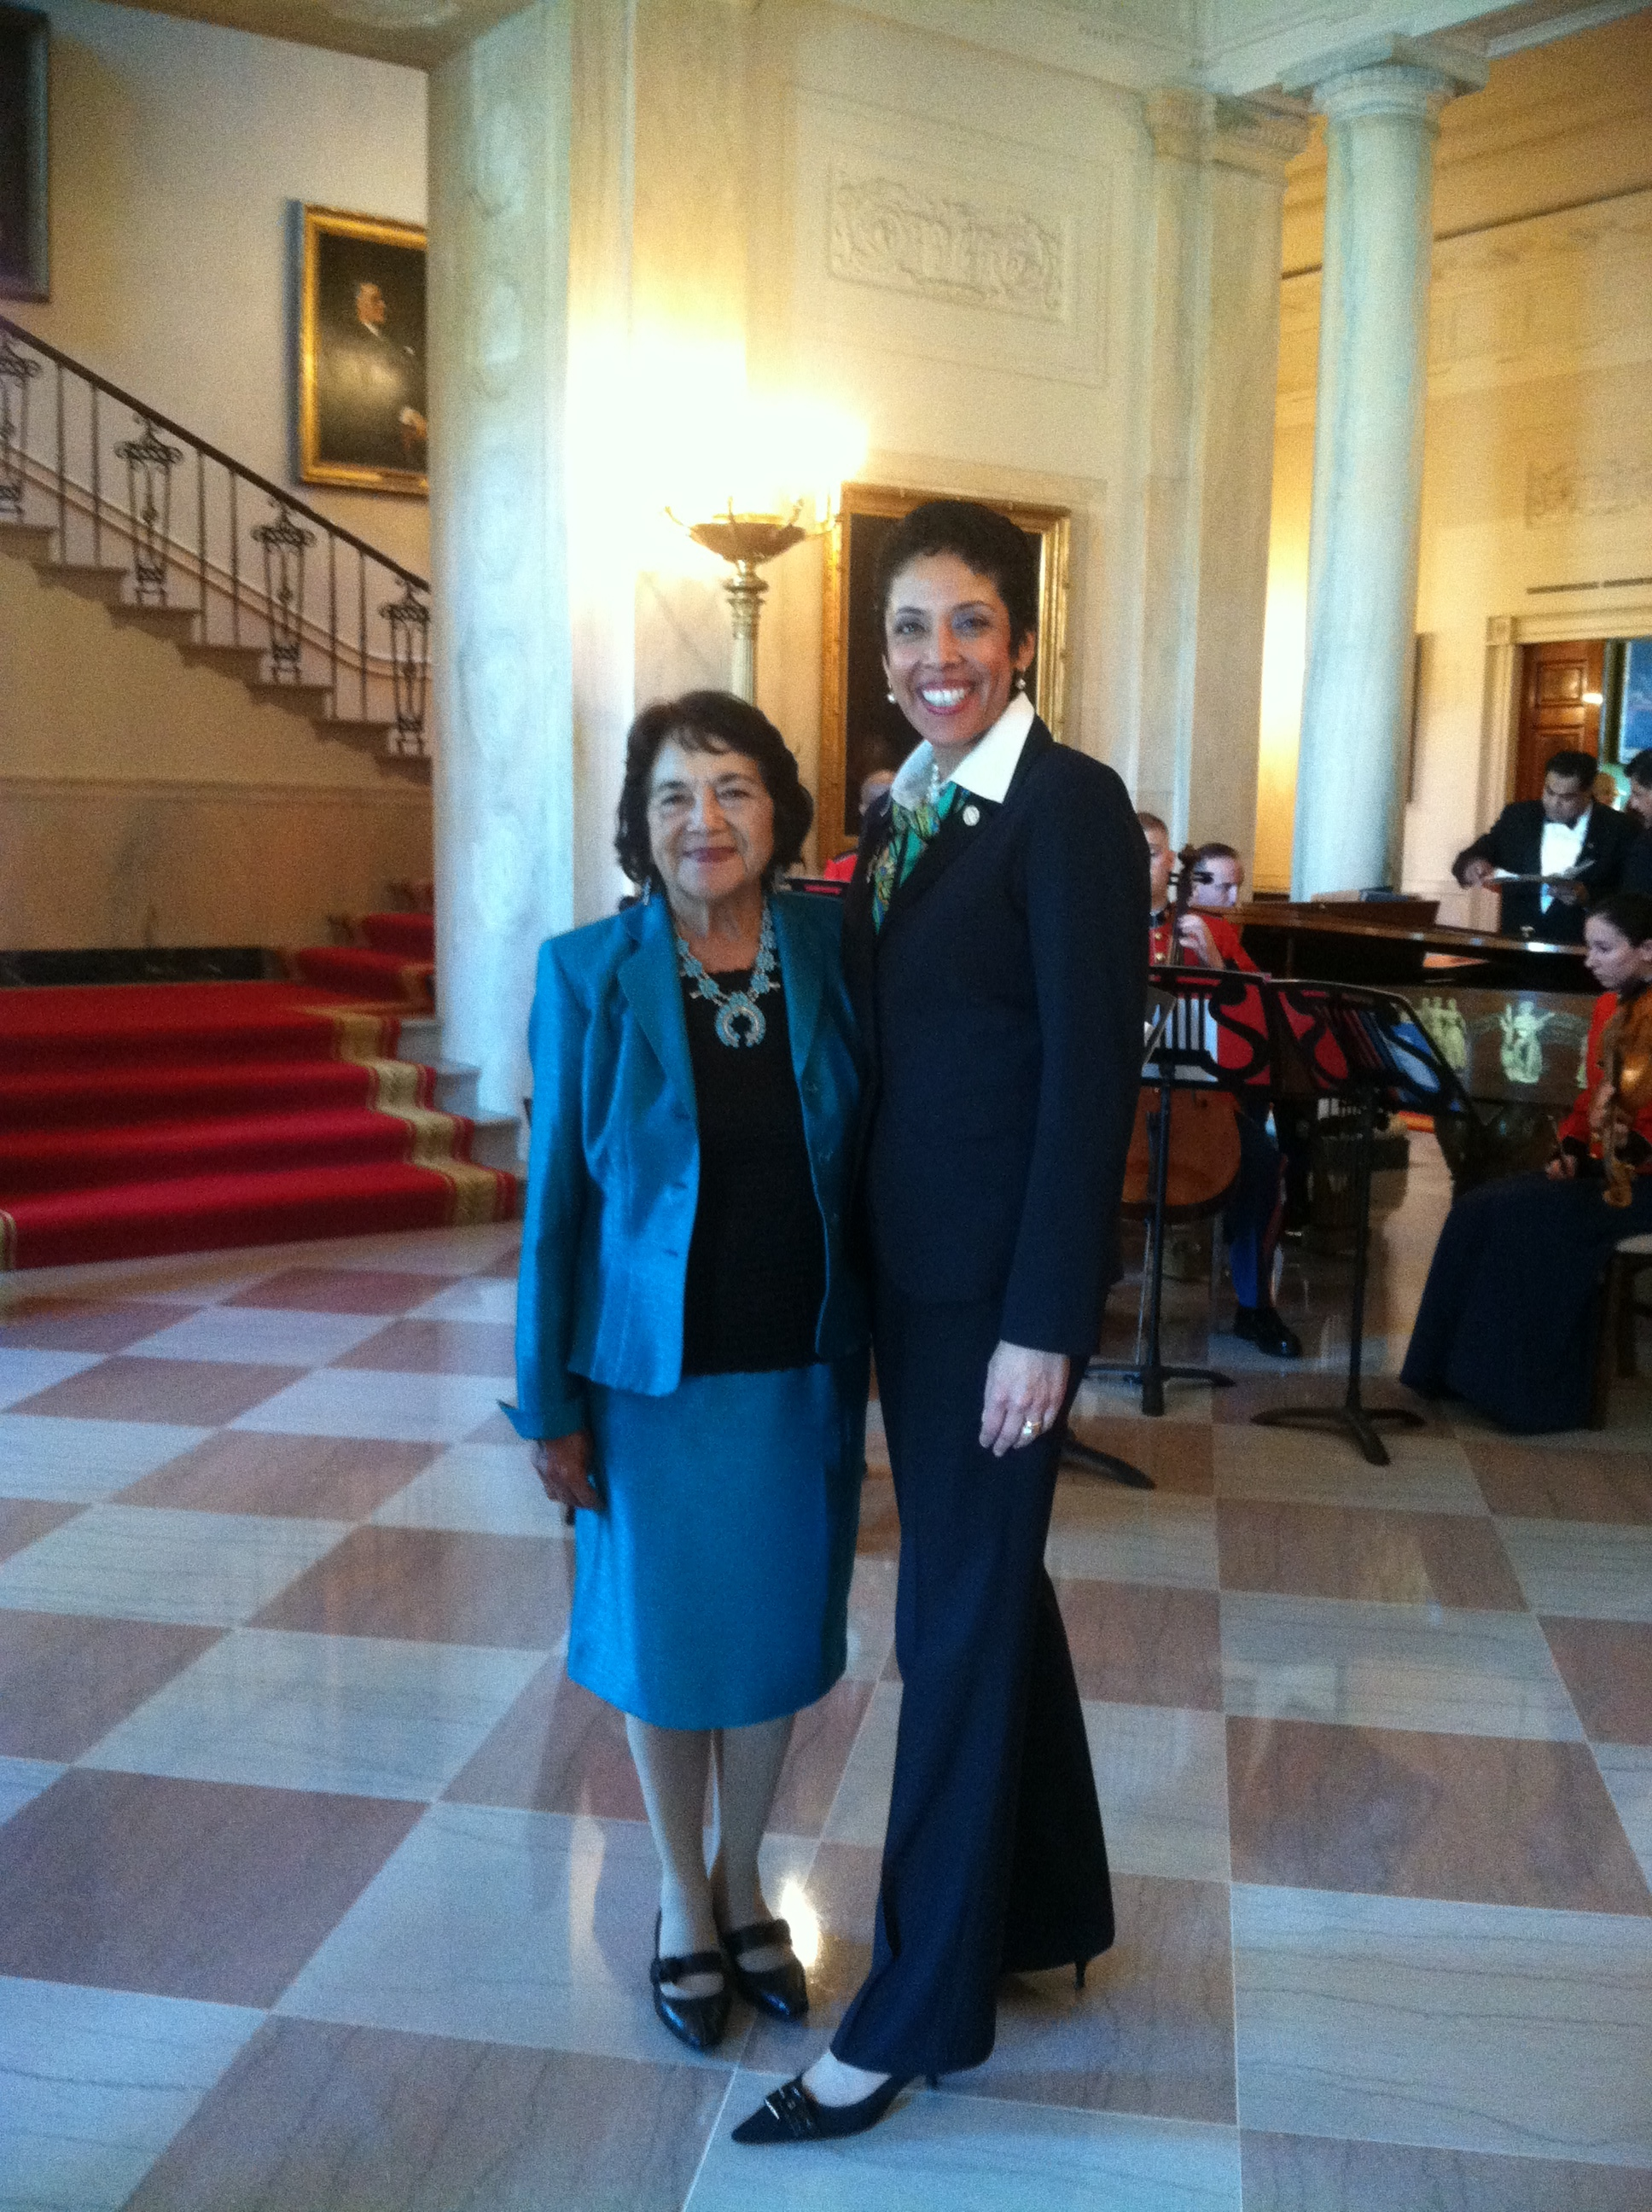 Labor Leader Dolores Huerta with Anna Maria Chávez